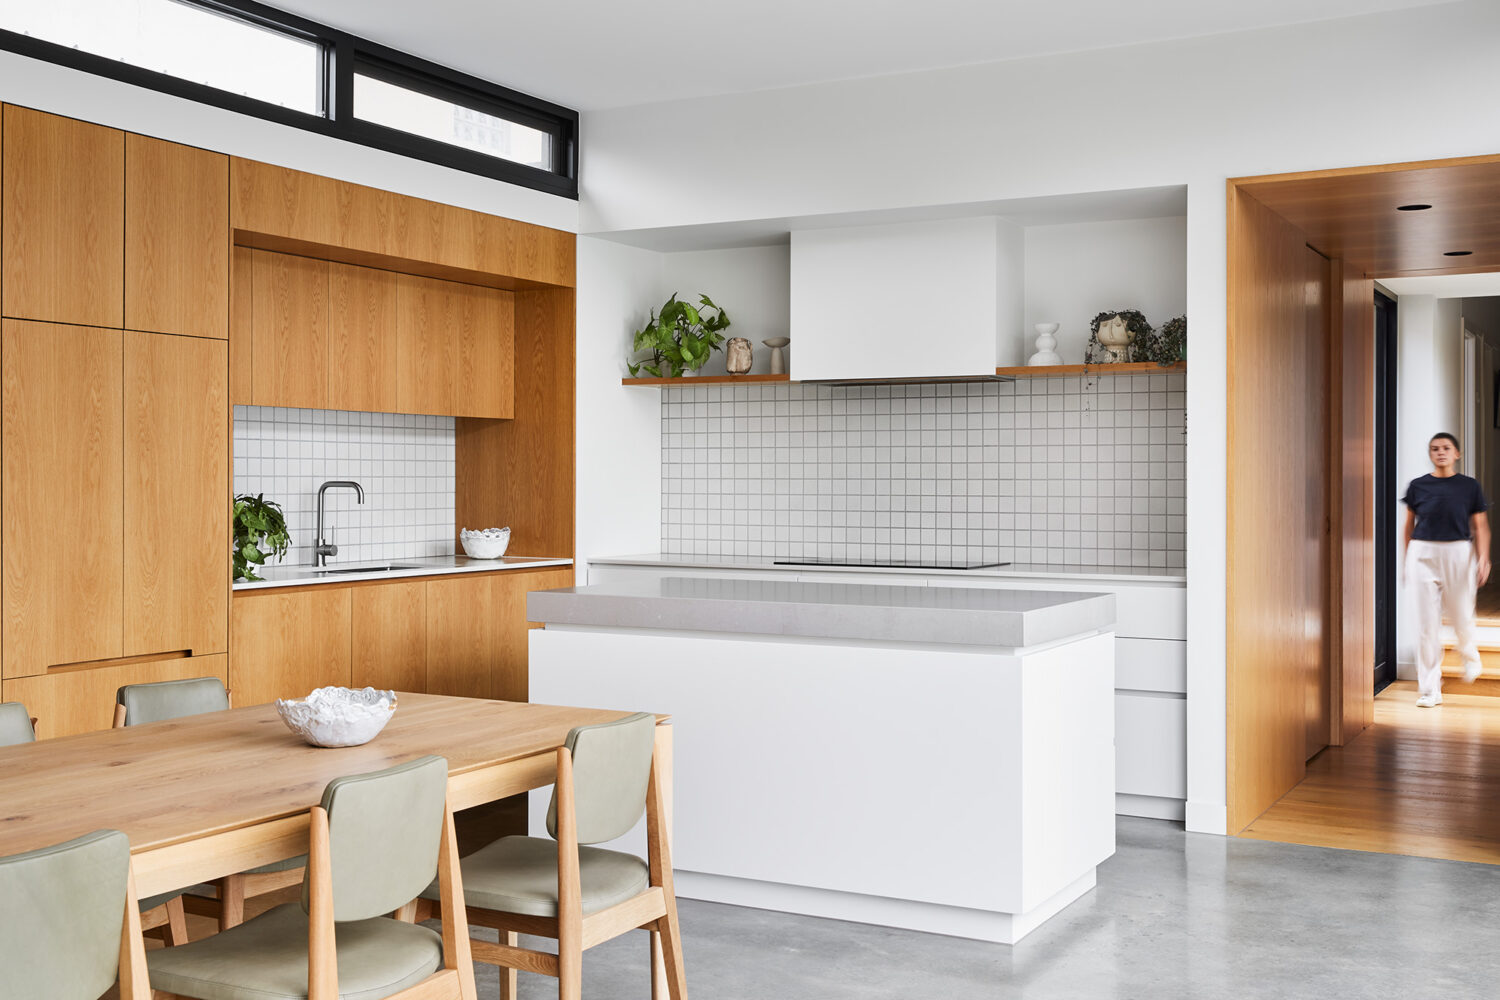 Maike Design kitchen. Timber joinery, white joinery with stone tops. Textured tile splashback. Timber and glass hallway link